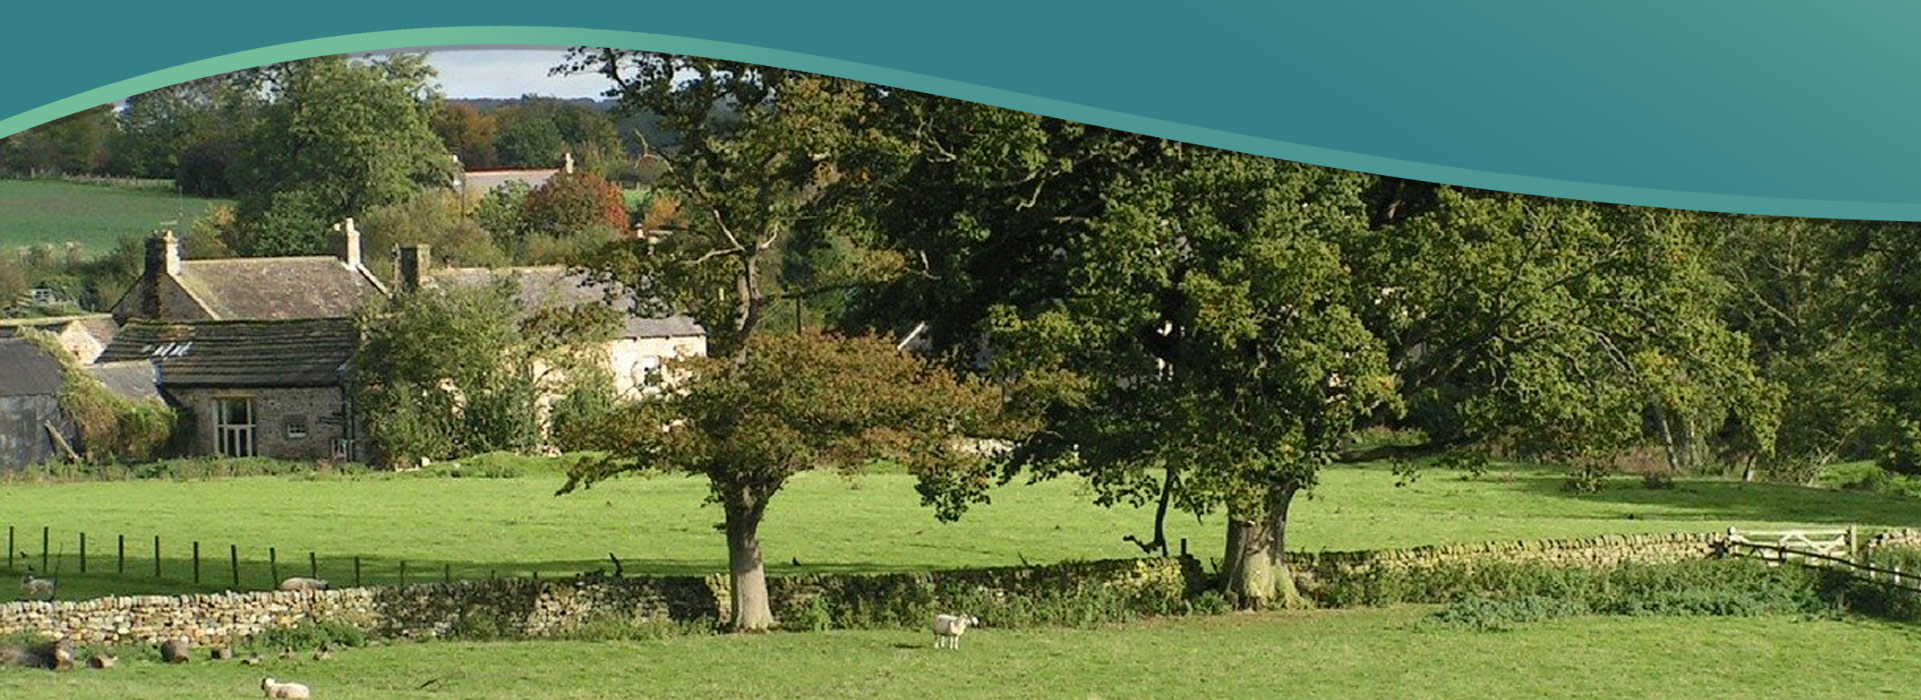 agricultural valuers cheshire